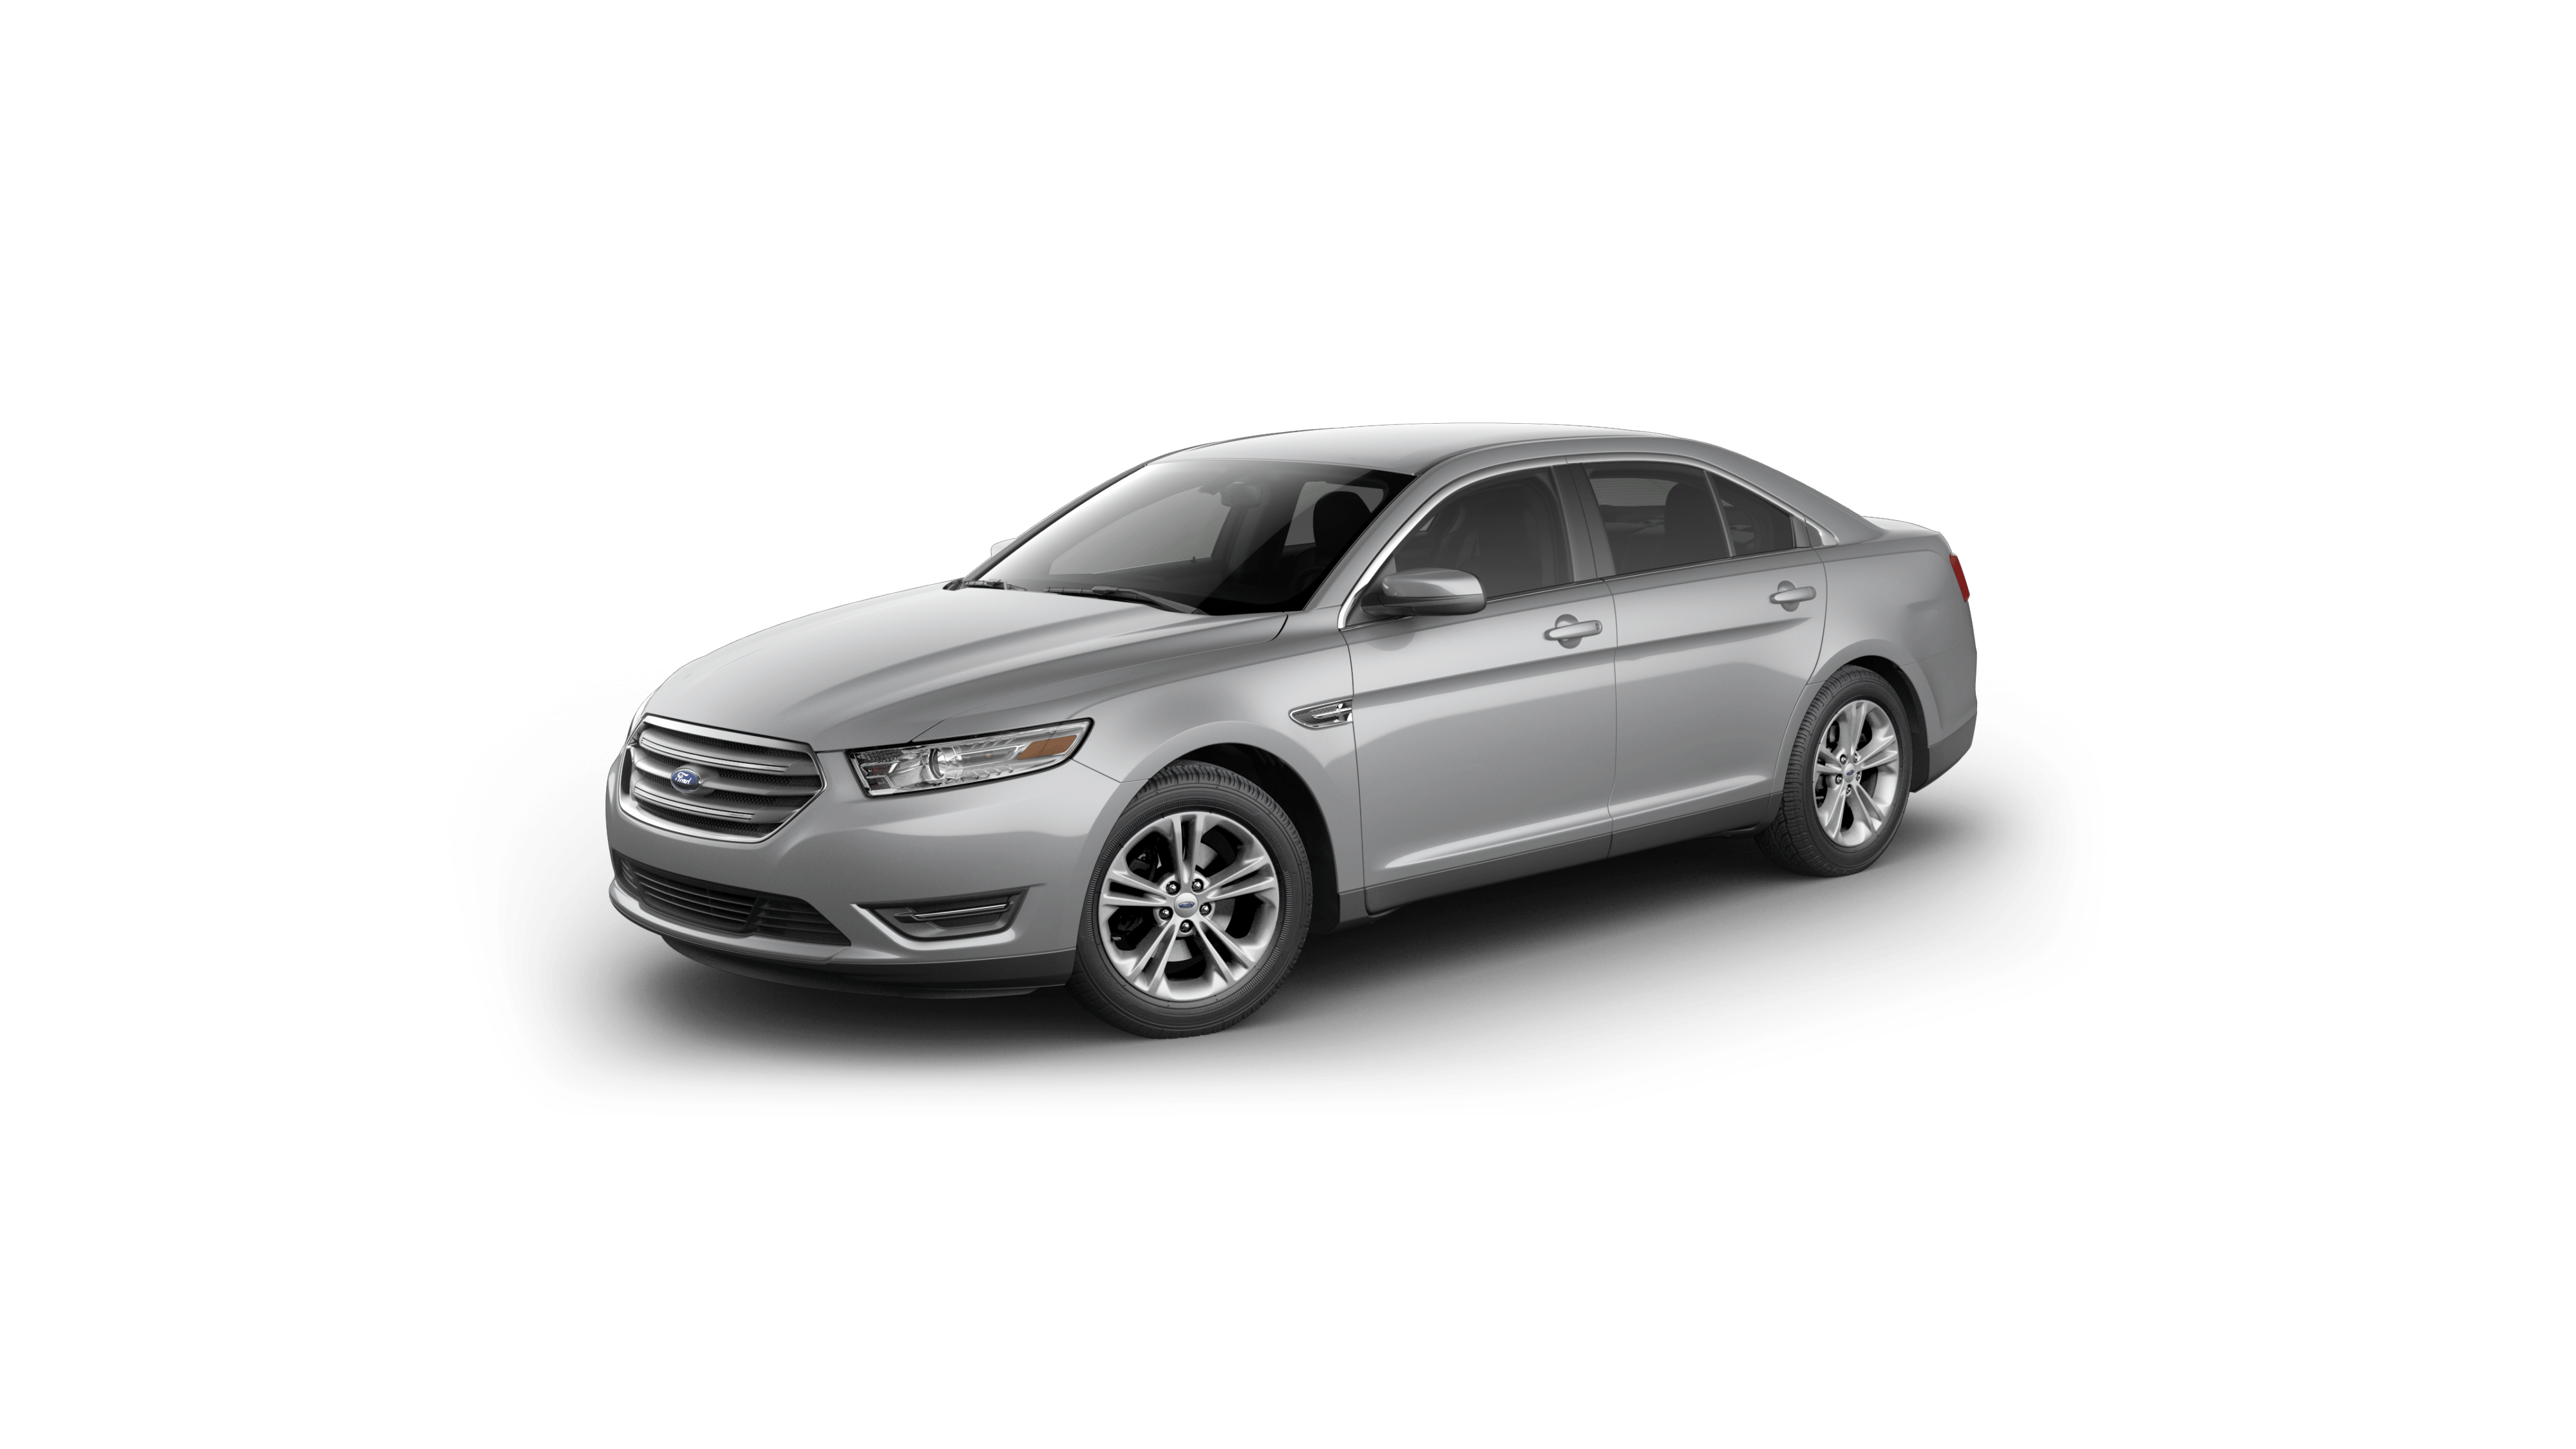 2018 Ford Taurus Vehicle Photo in Souderton, PA 18964-1038